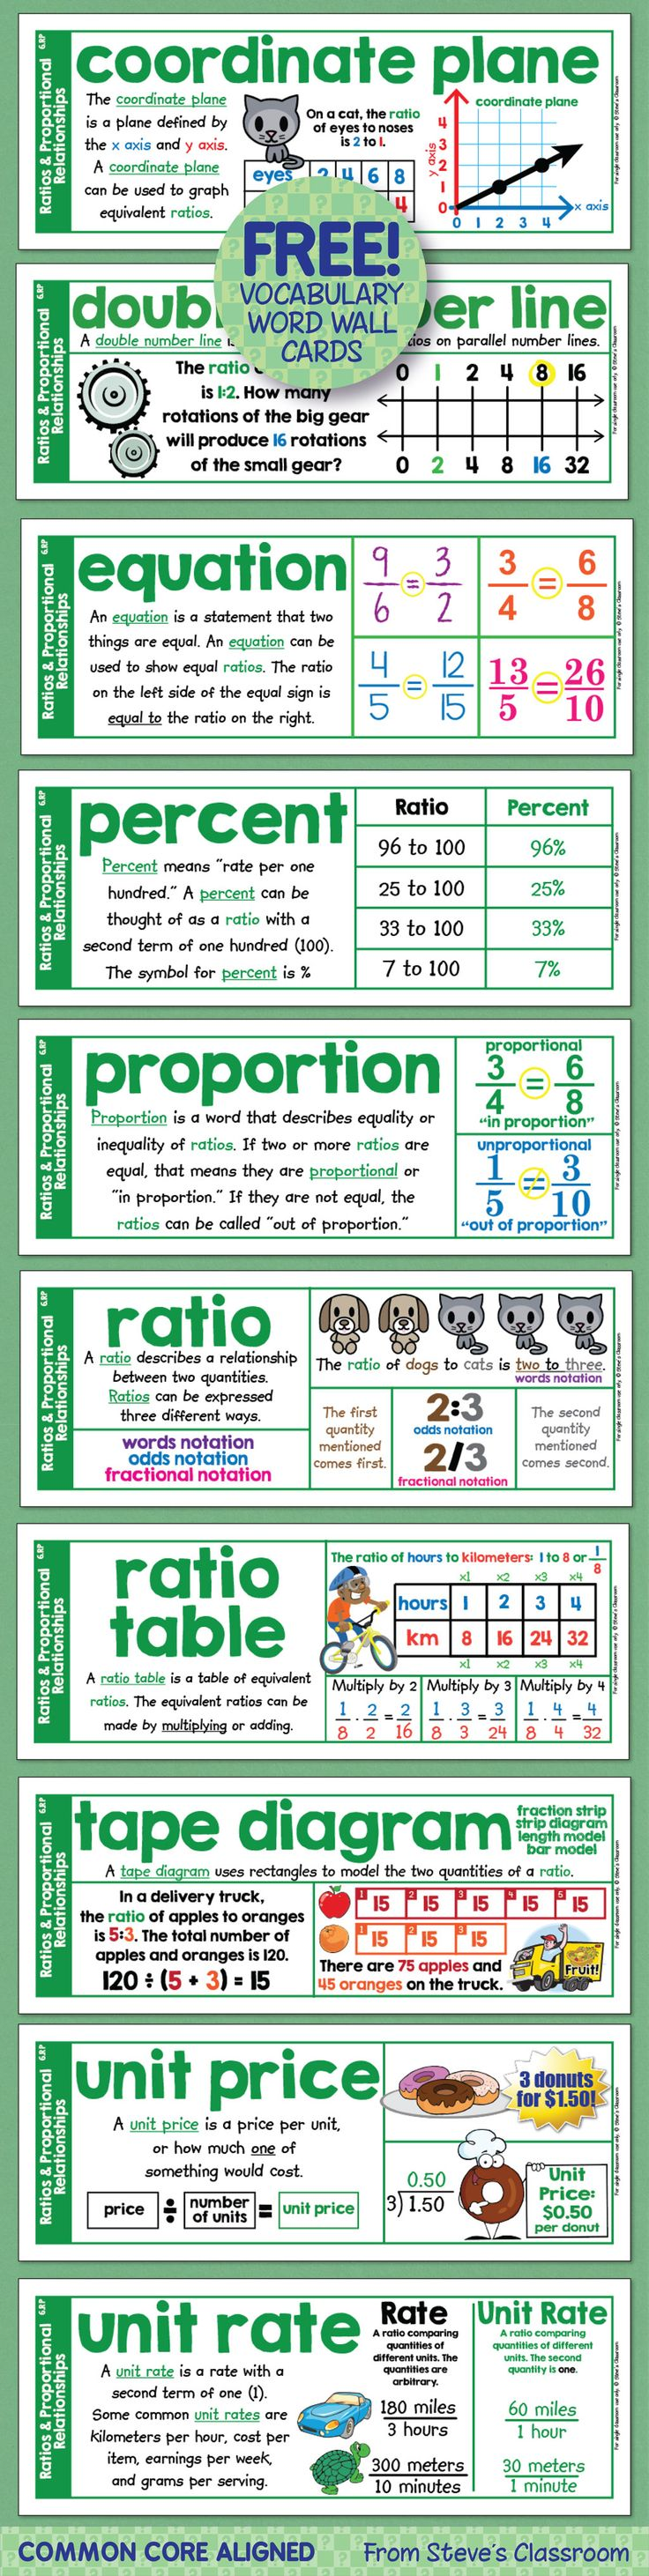 Free! Word wall cards for math ratios and proportional relationships! -         Repinned by Chesapeake College Adult Ed. We offer free classes on the Eastern Shore of MD to help you earn your GED - H.S. Diploma or Learn English (ESL) .   For GED classes contact Danielle Thomas 410-829-6043 dthomas@chesapeke.edu  For ESL classes contact Karen Luceti - 410-443-1163  Kluceti@chesapeake.edu .  www.chesapeake.edu